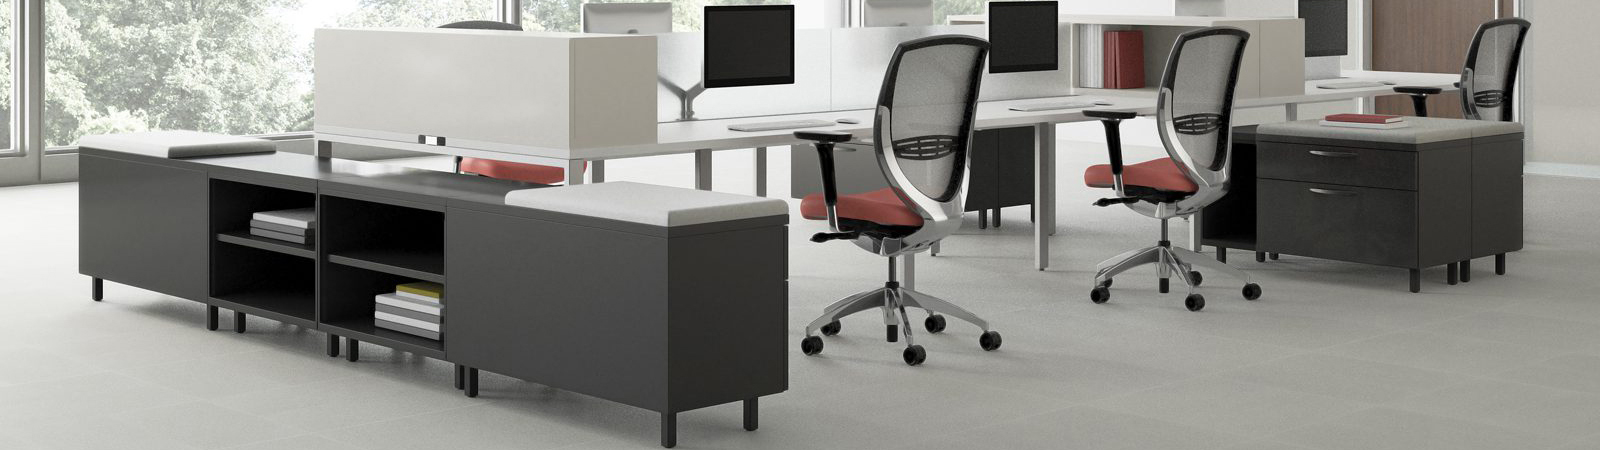 Stylish Office Workstations, Accesories, Delhi NCR, India